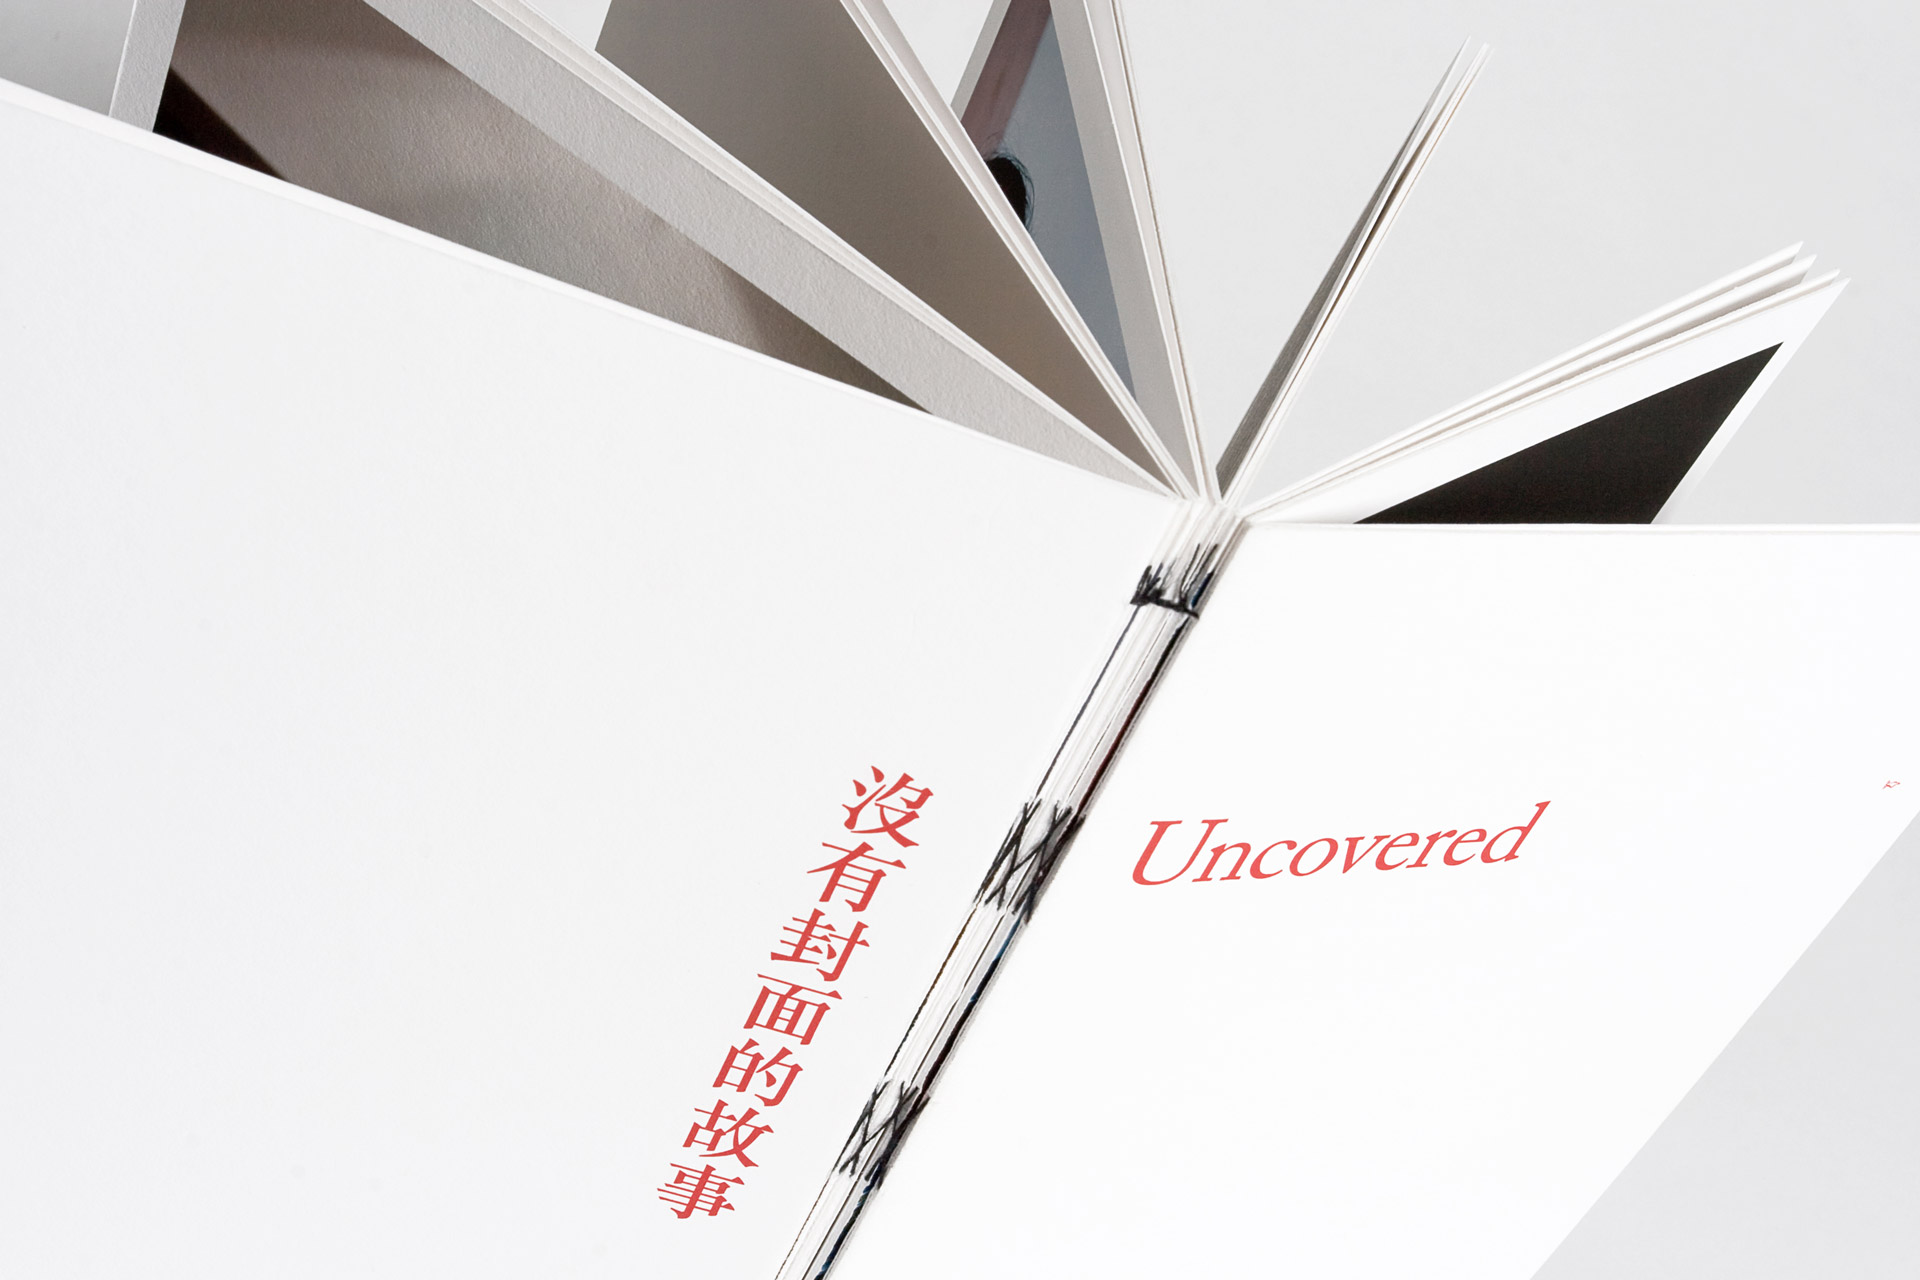 uncovered_01